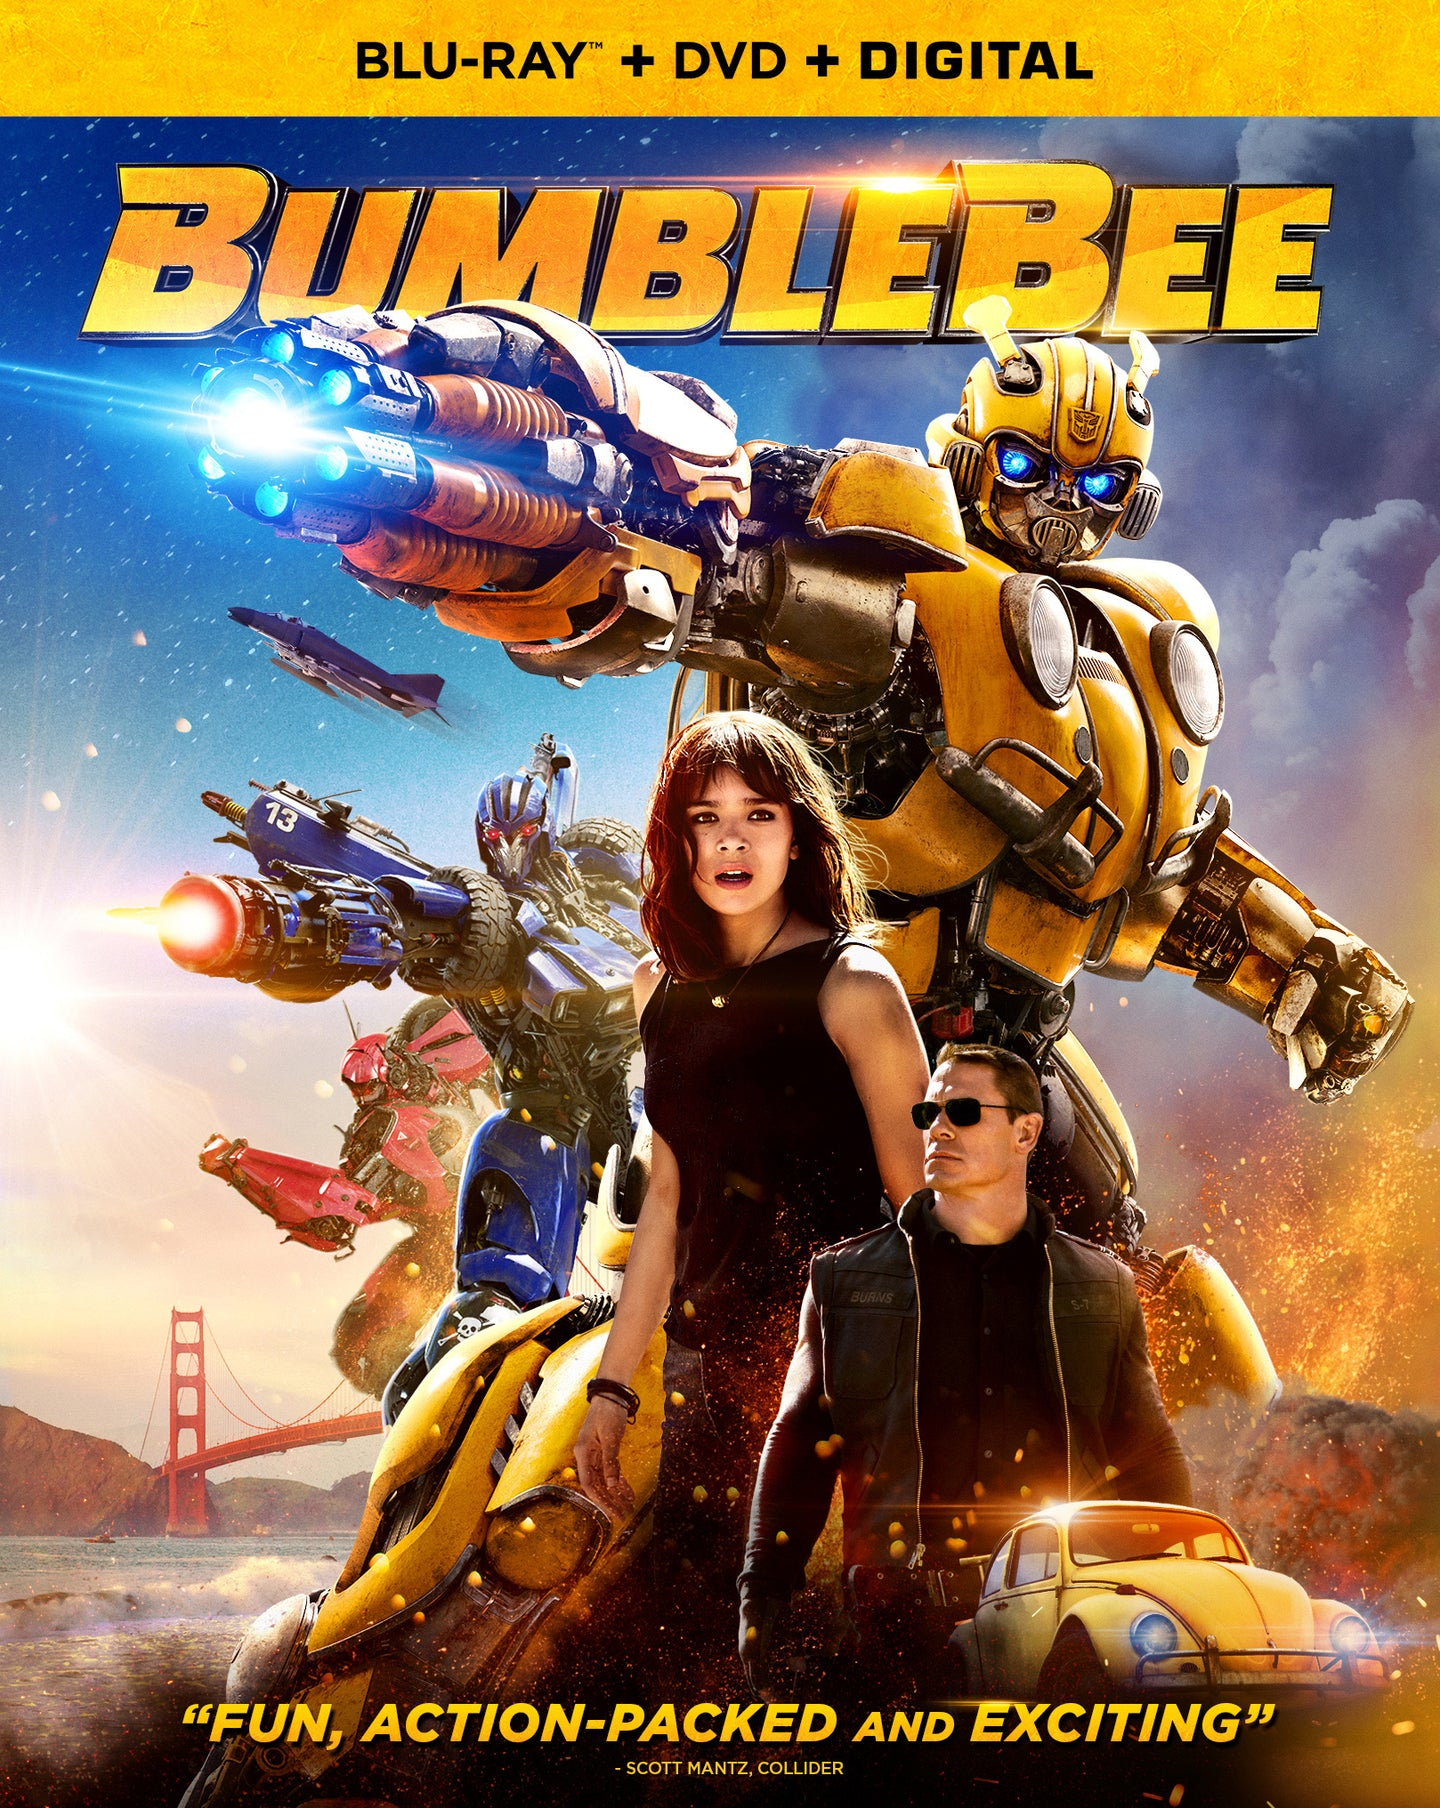 Bumblebee (2018) Vudu HD redemption only